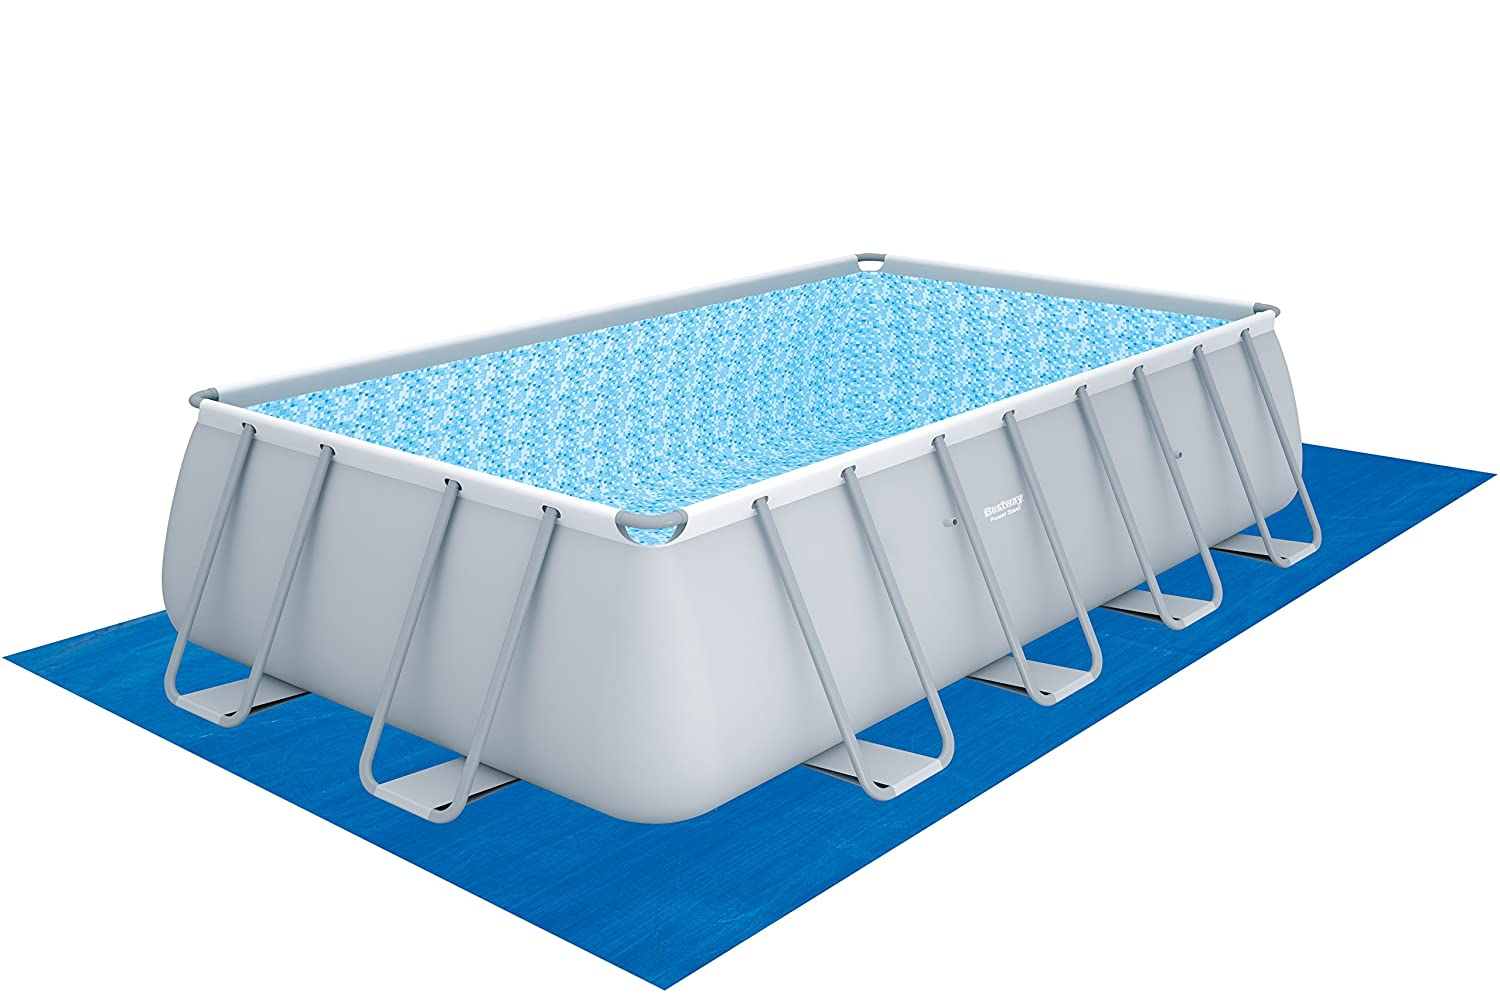 Bestway Power Steel 56390 - Piscina (Piscina con Anillo Hinchable, Rectangular, 13177 L, 110 cm, 3785 l/h, PVC): Amazon.es: Jardín